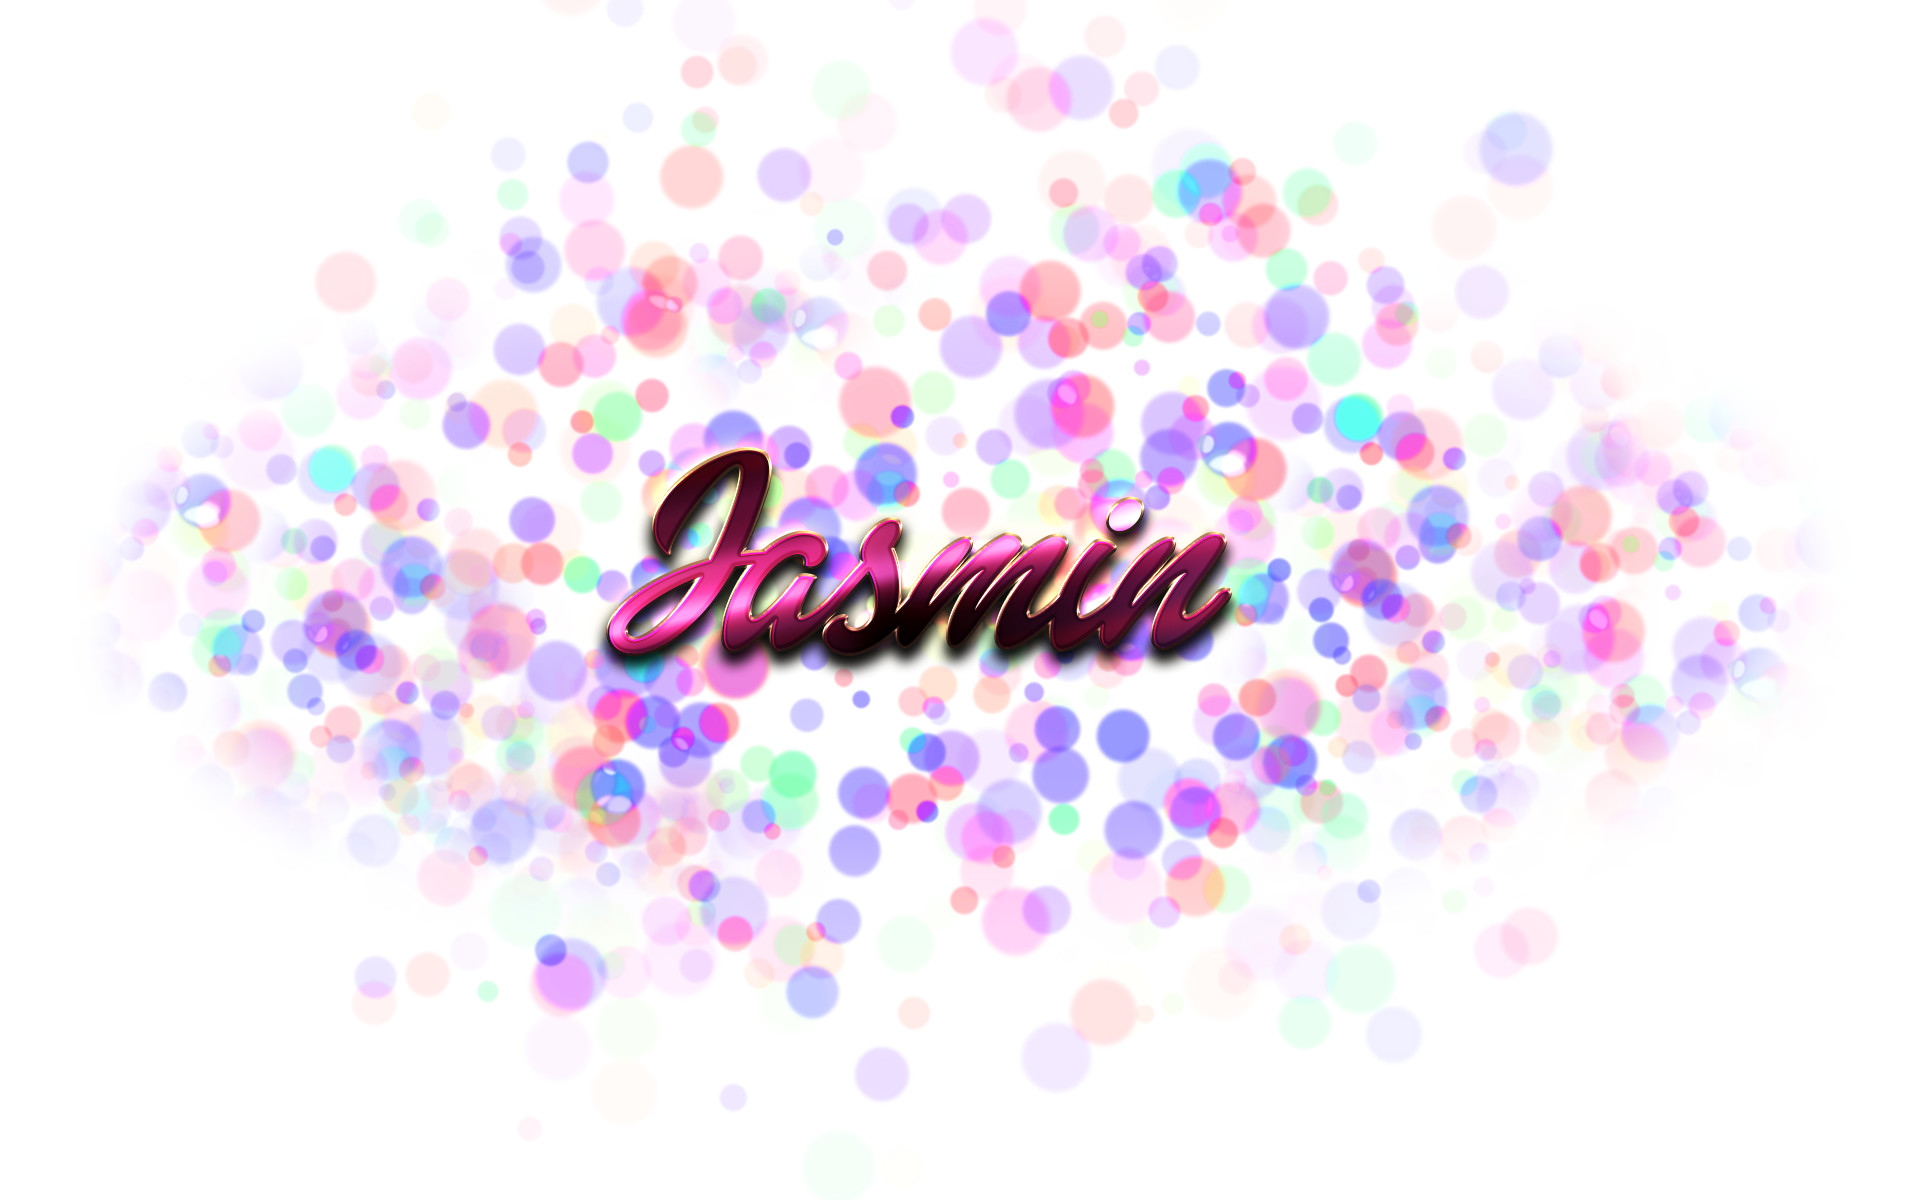 Jasmine Name Wallpapers Posted By Sarah Mercado